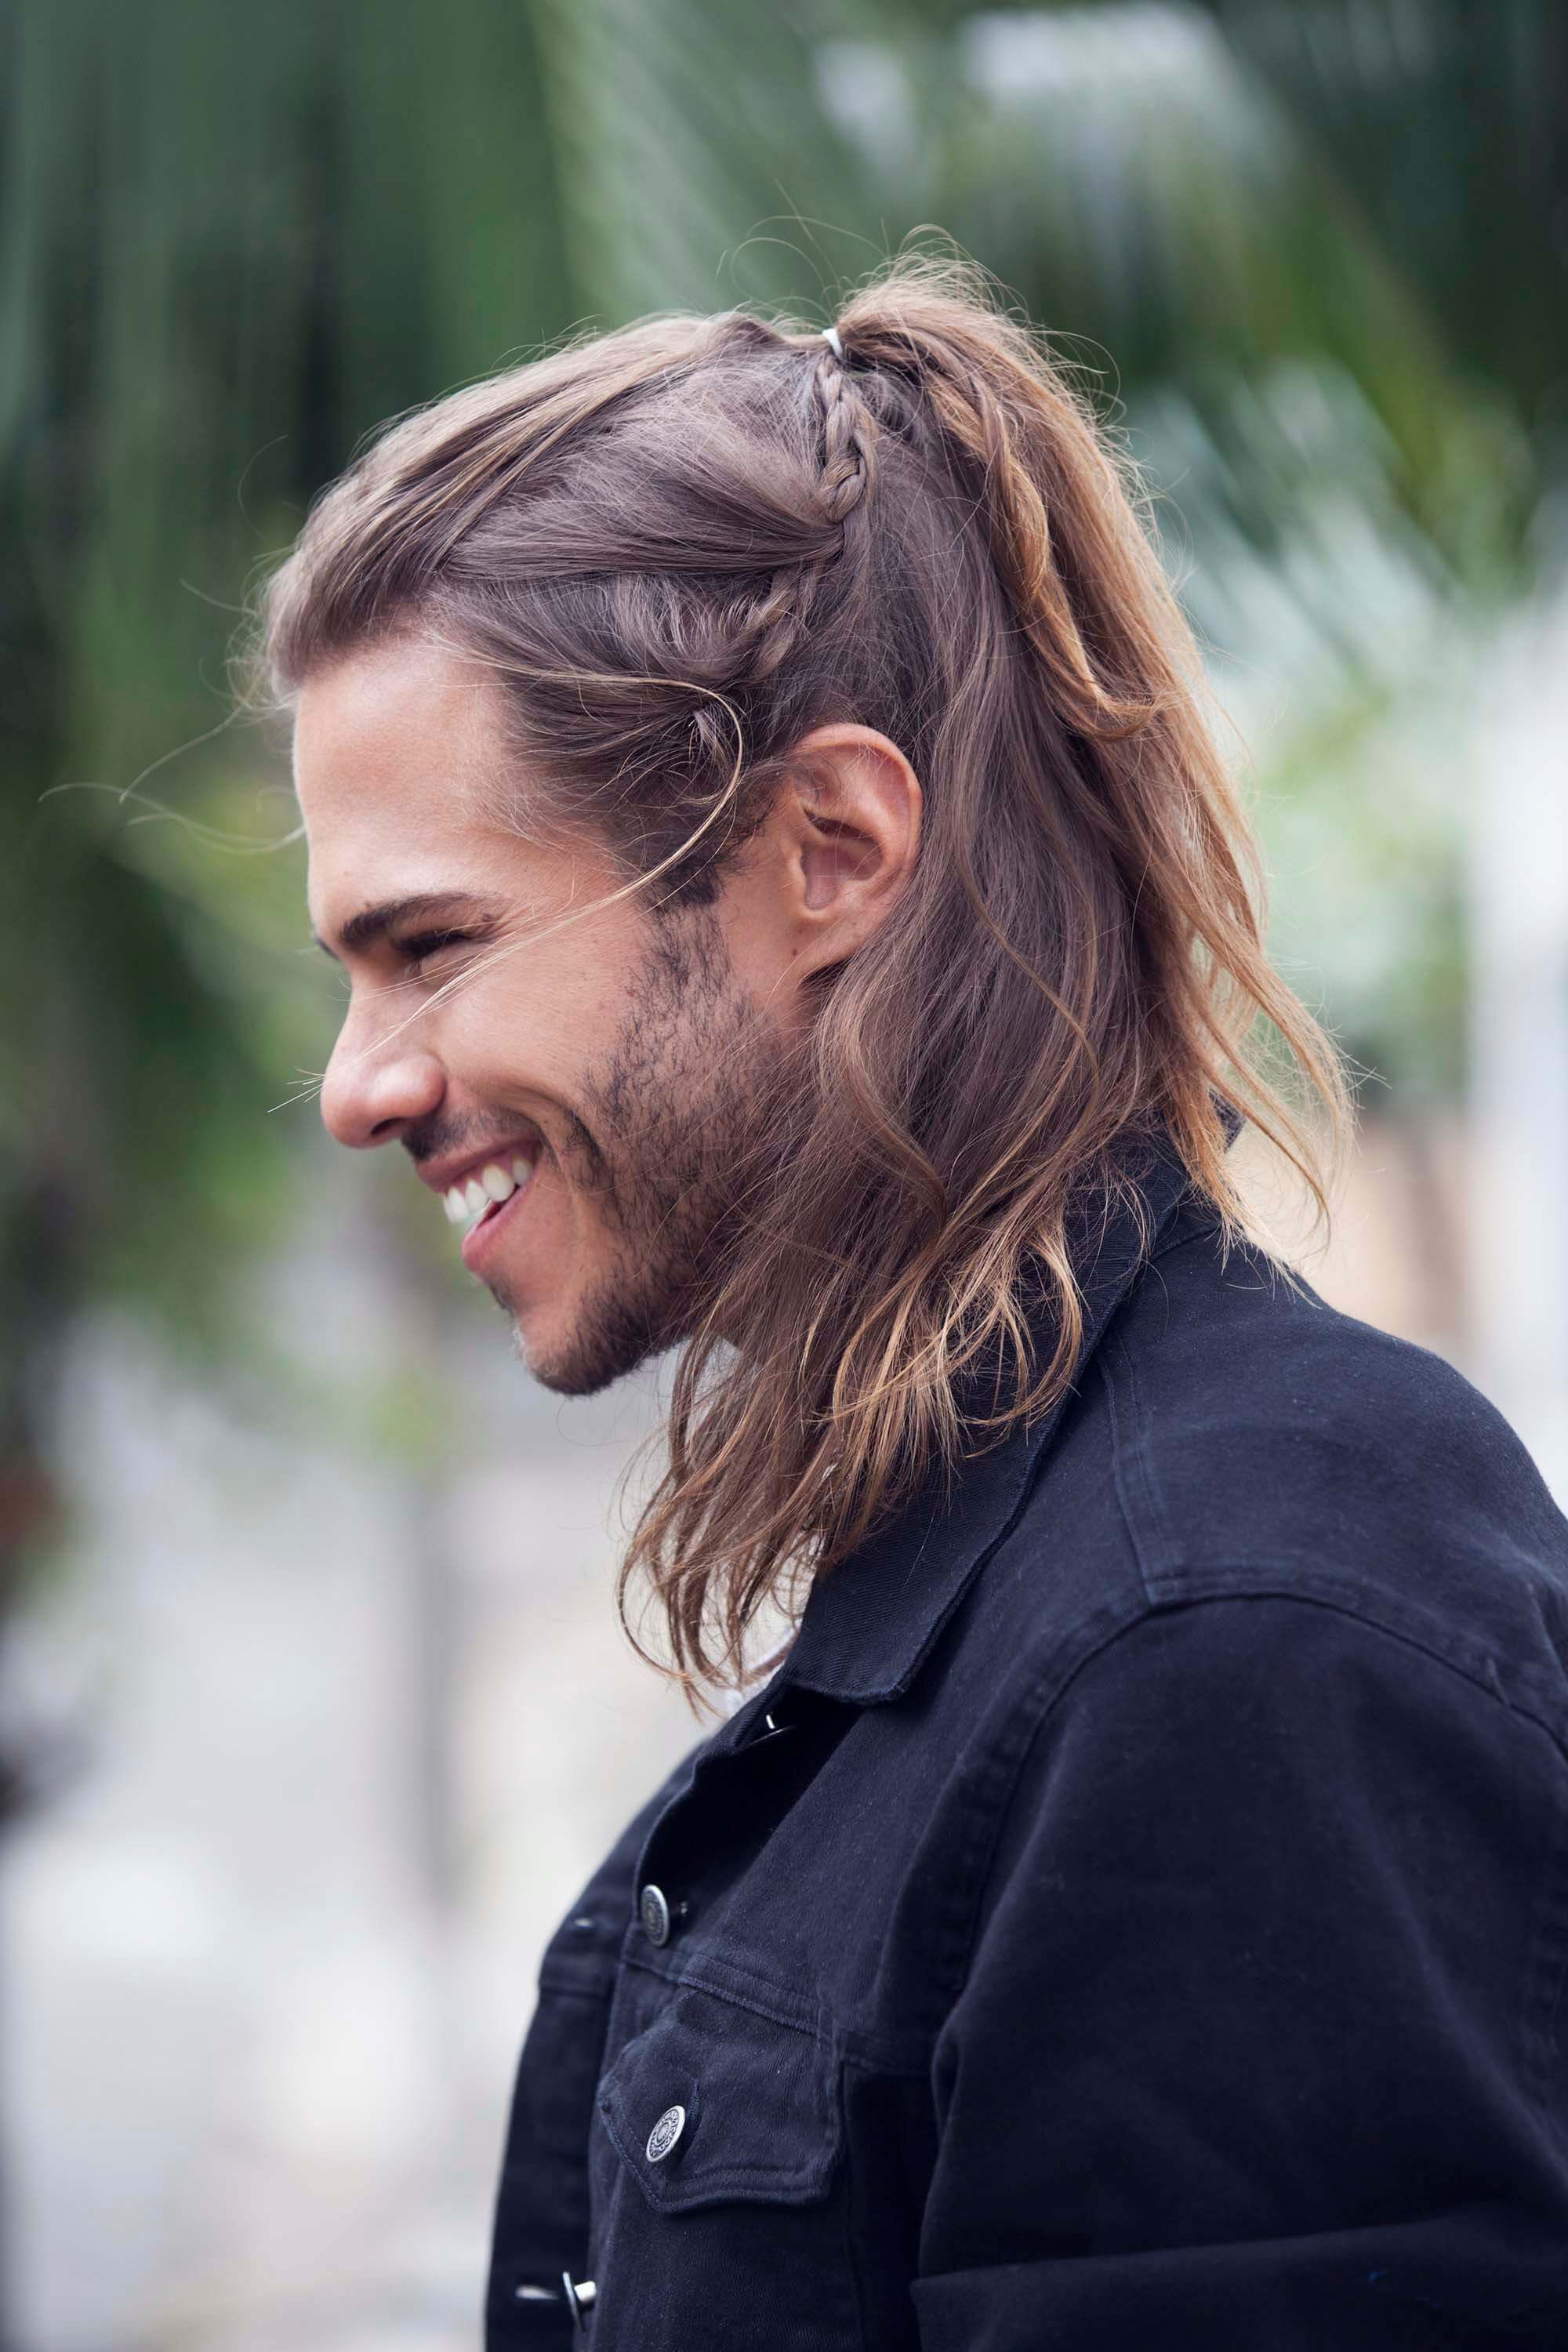 20 trendy alternative haircuts ideas for women man braids hair 20 trendy alternative haircuts ideas for women ccuart Images